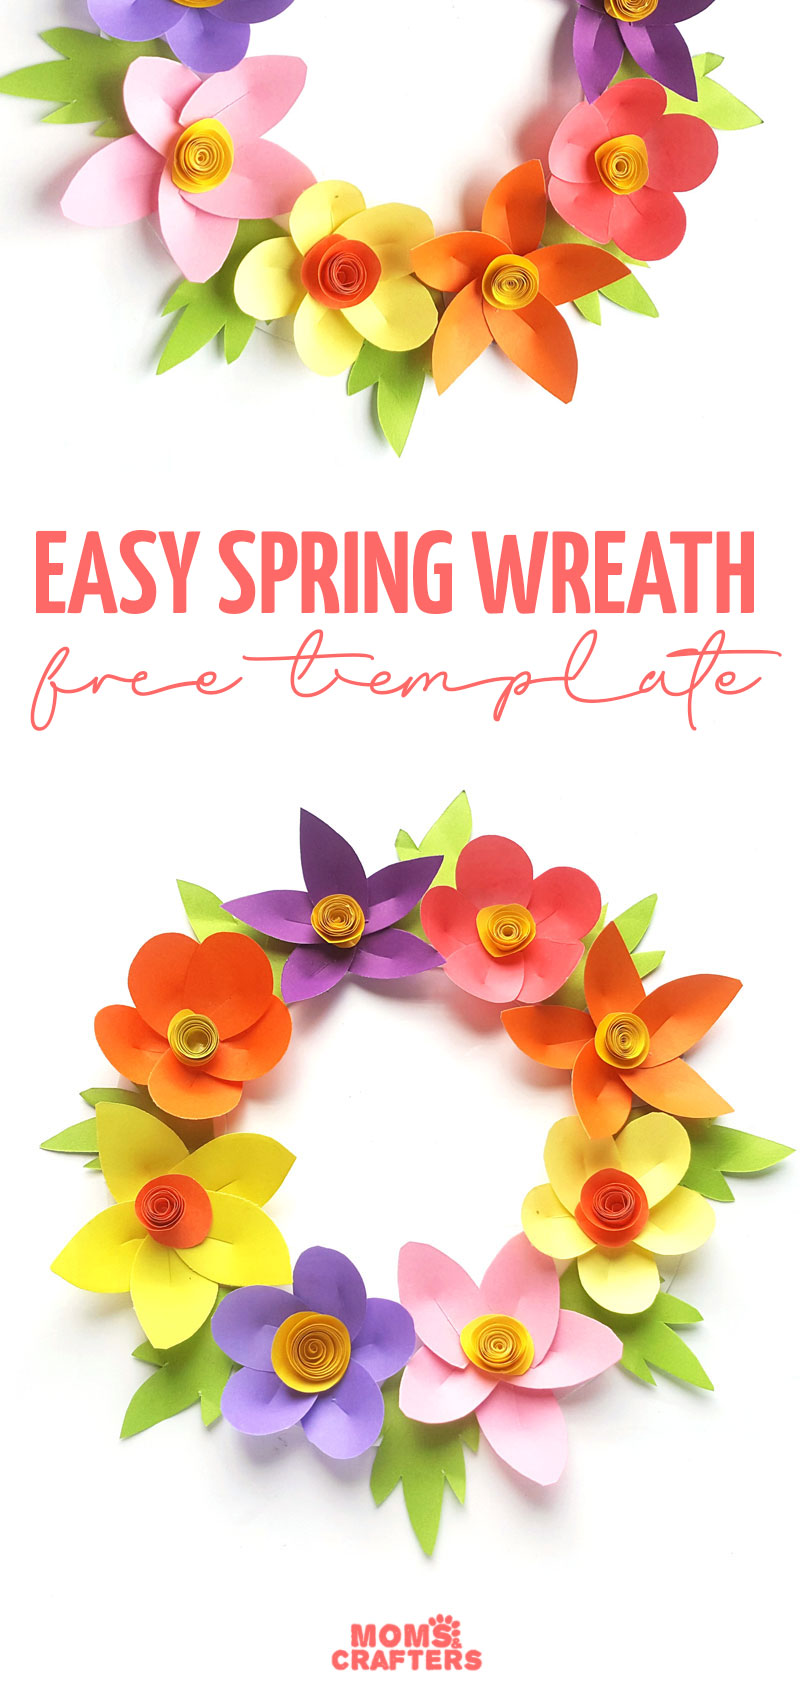 paper wreath craft for kids preview image.